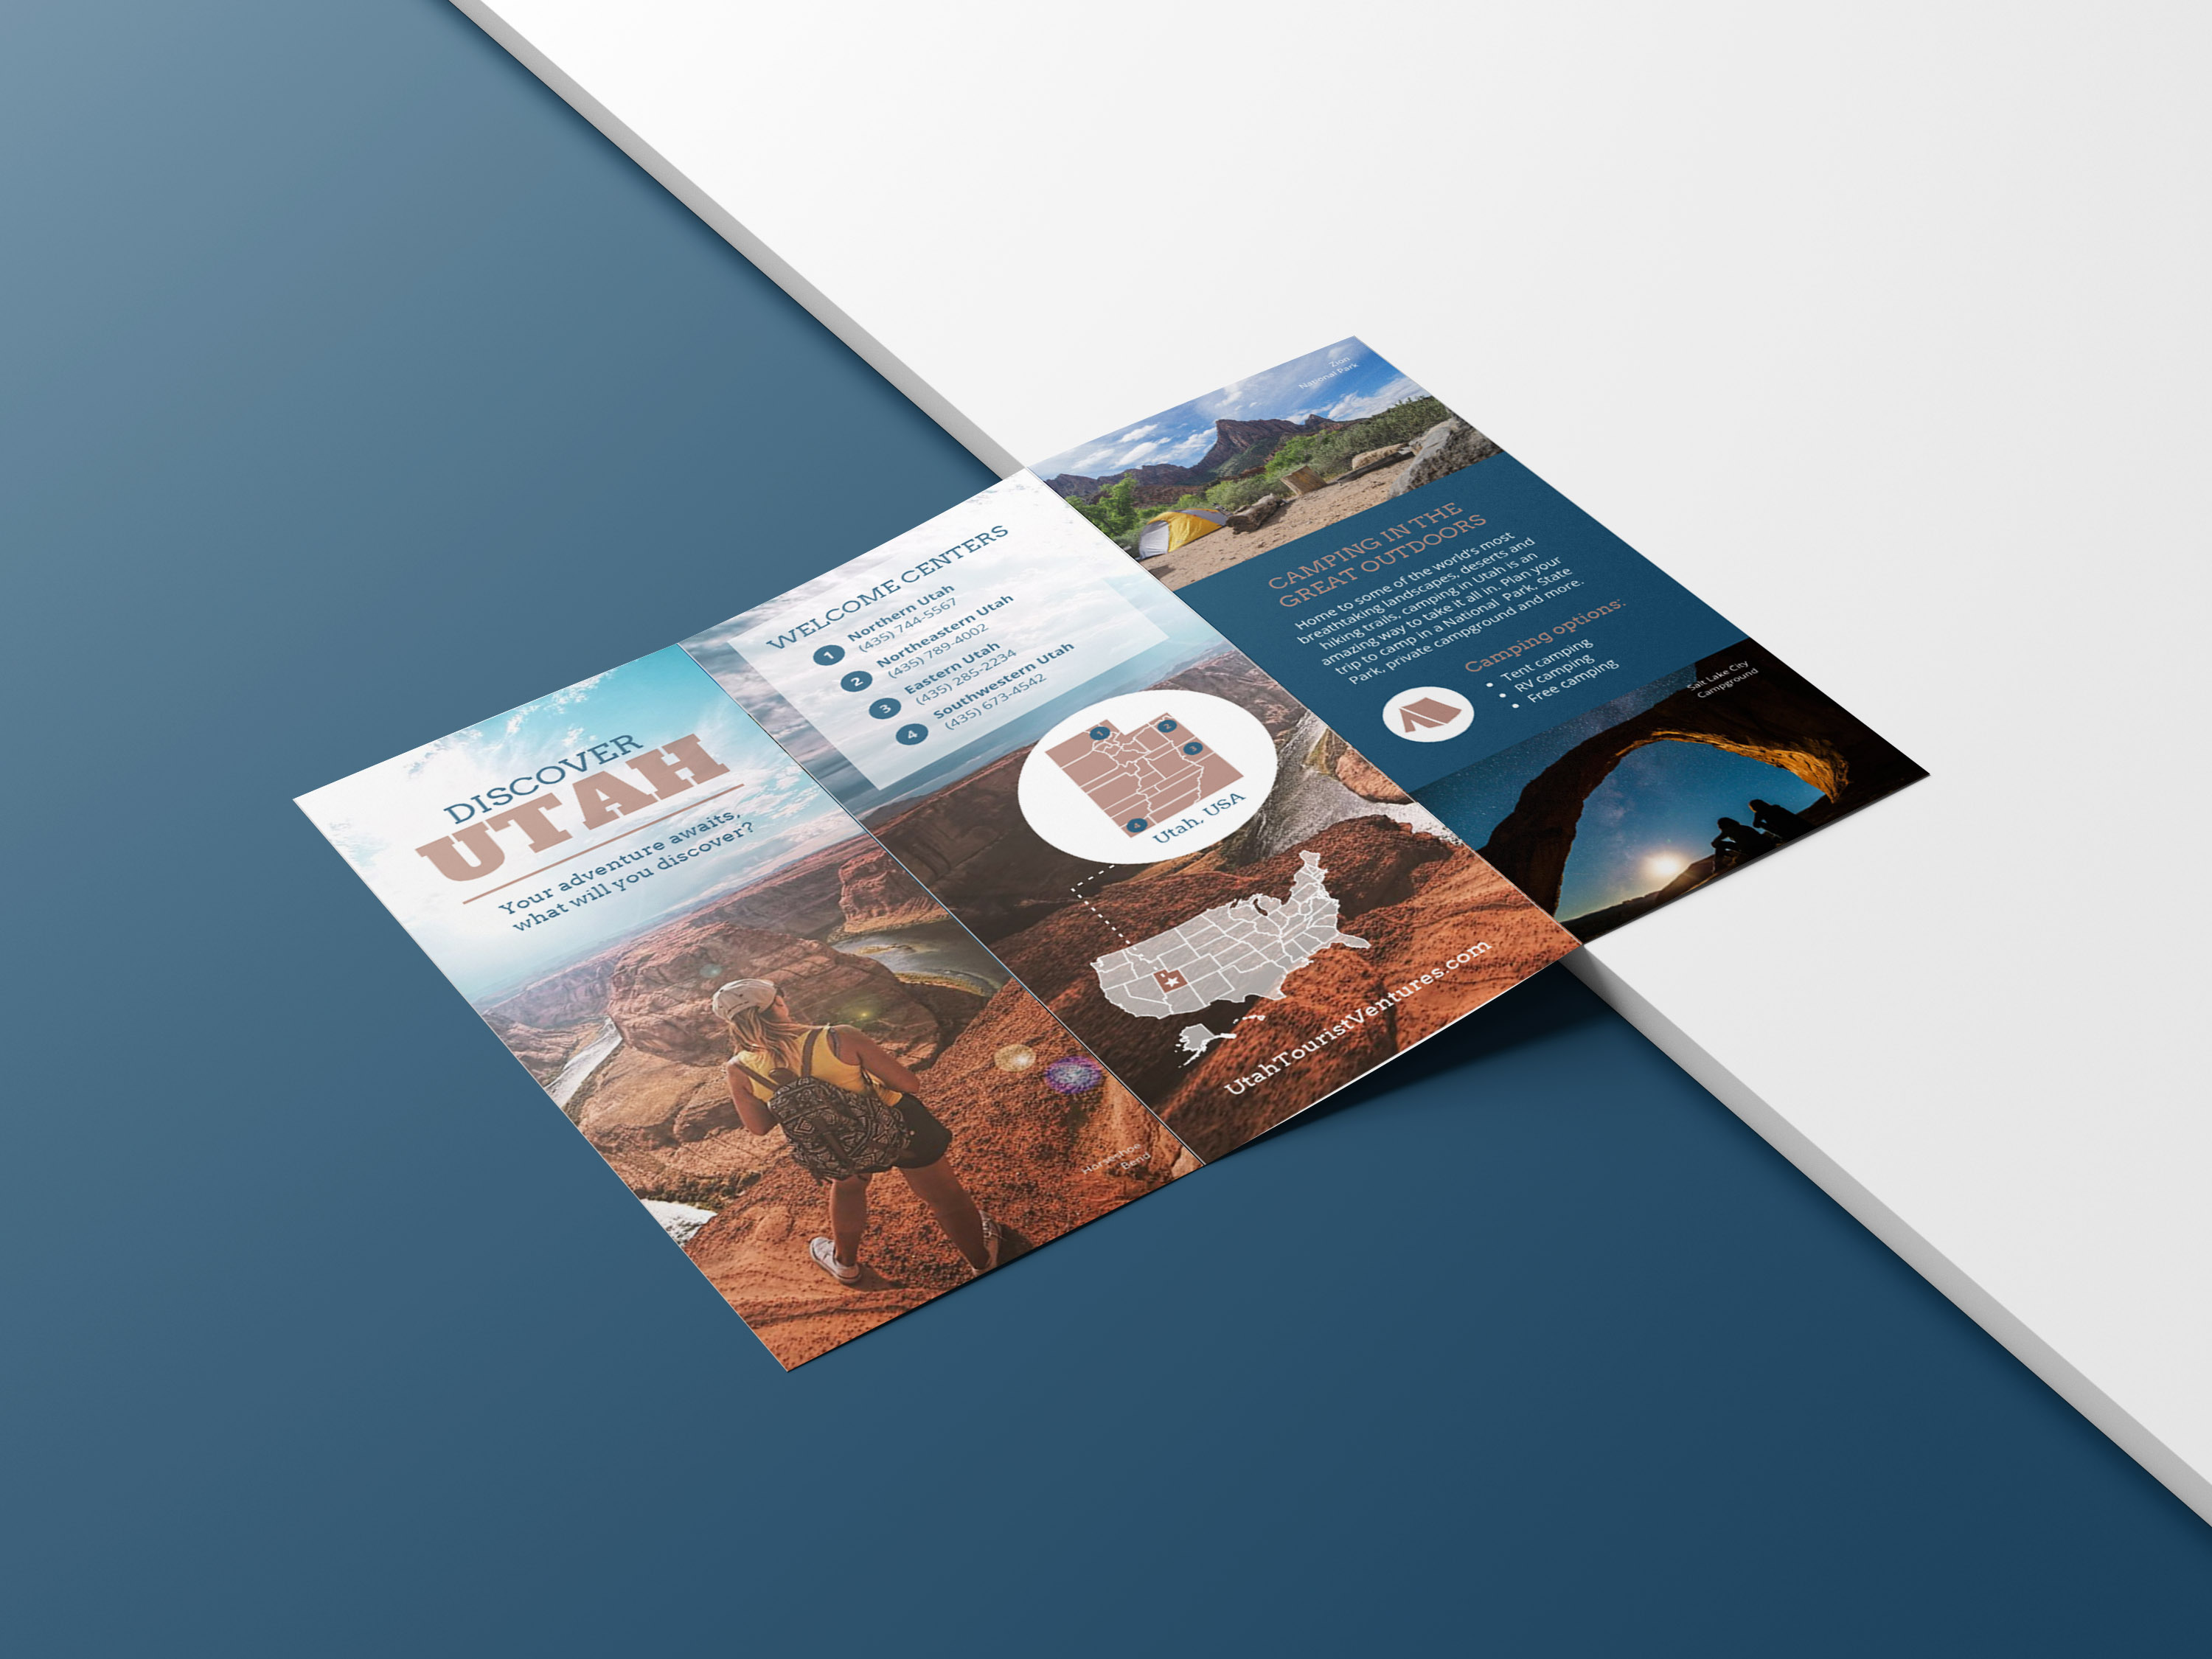 Photo Centric Blue Outdoor Travel Brochure Idea